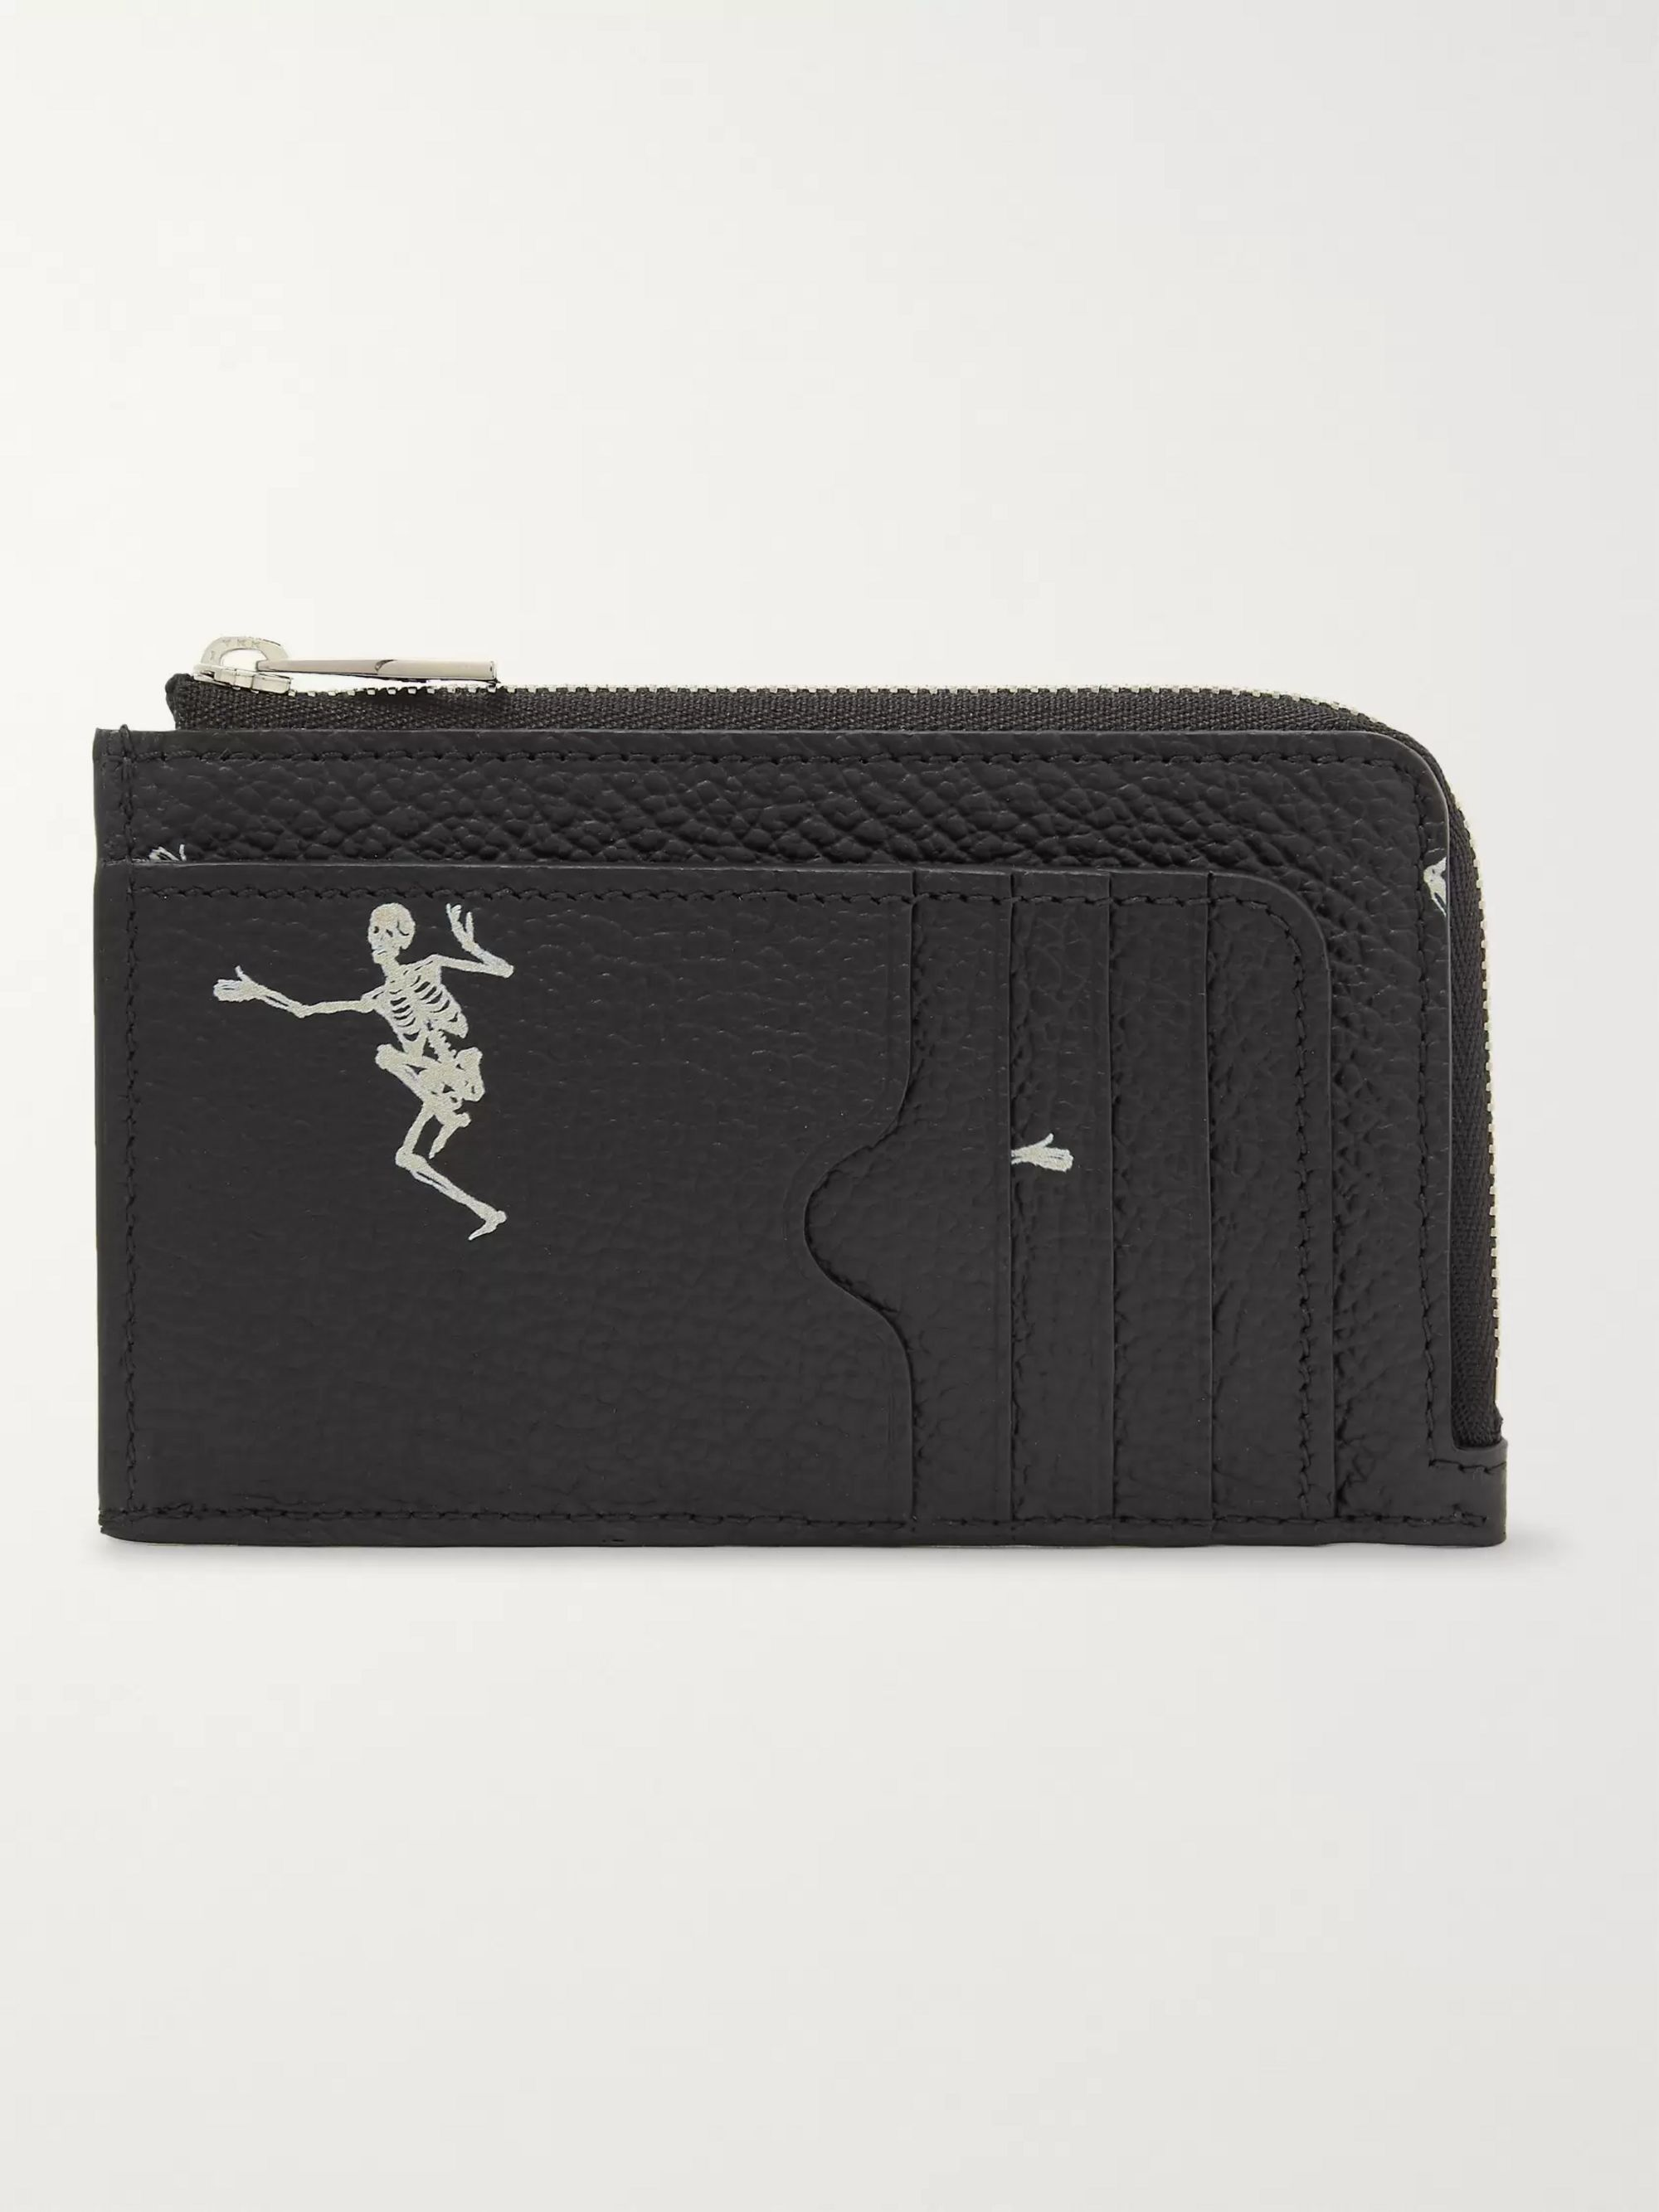 Alexander McQueen Printed Full-Grain Leather Zipped Cardholder